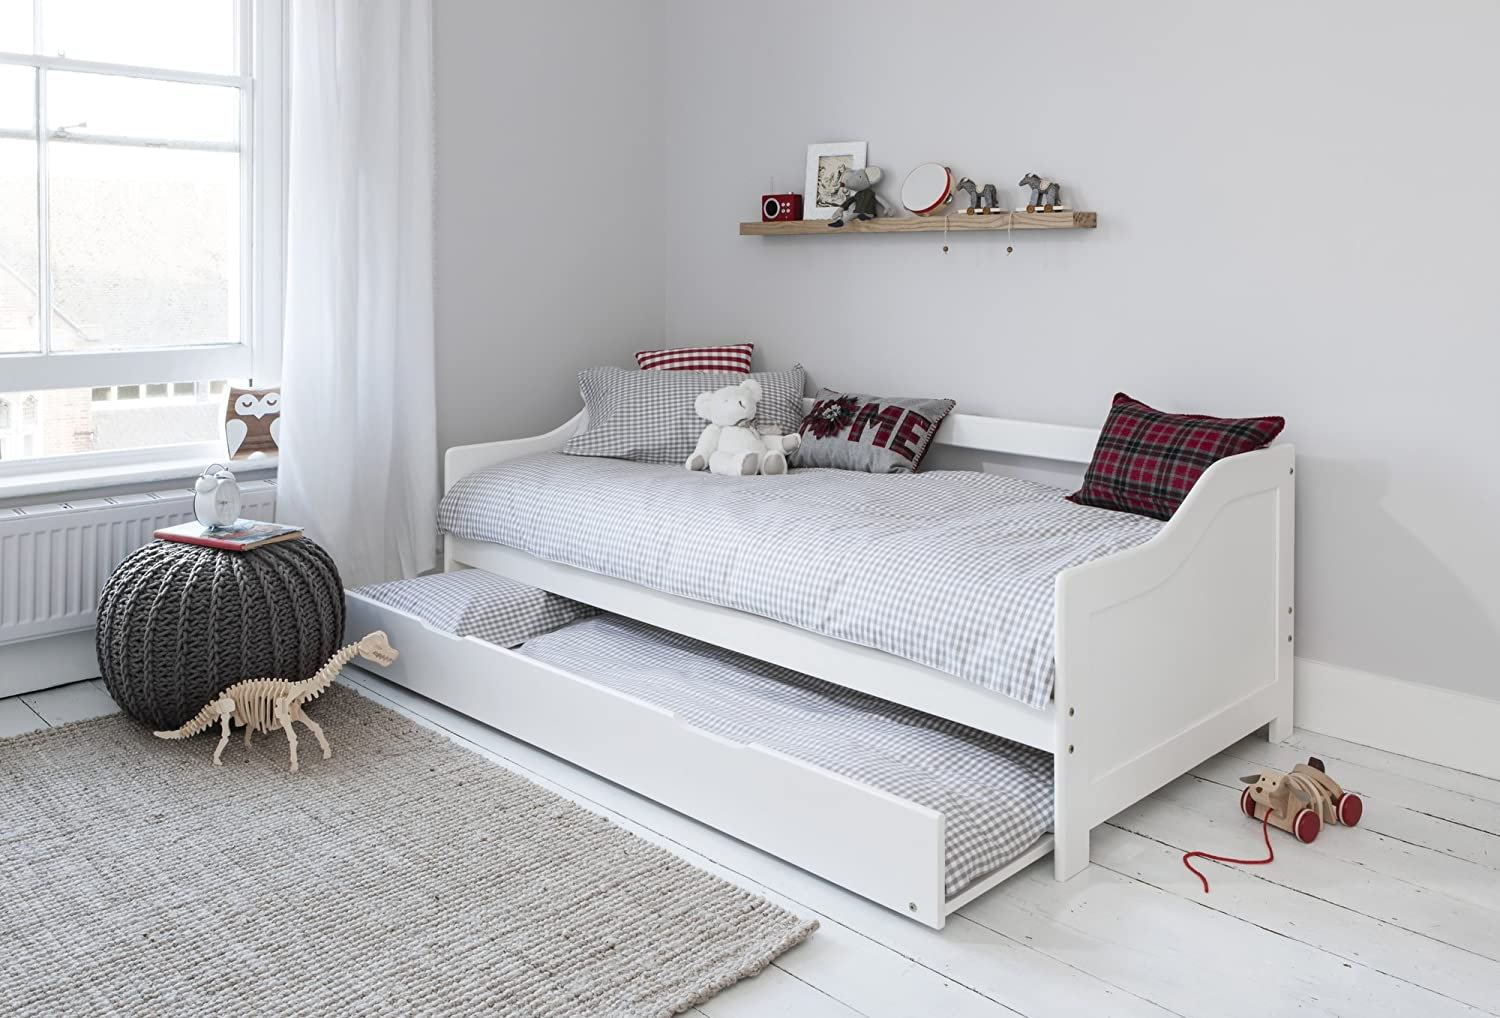 Day Bed Single With Underbed In White 2 Beds 1 Amazoncouk Kitchen Home